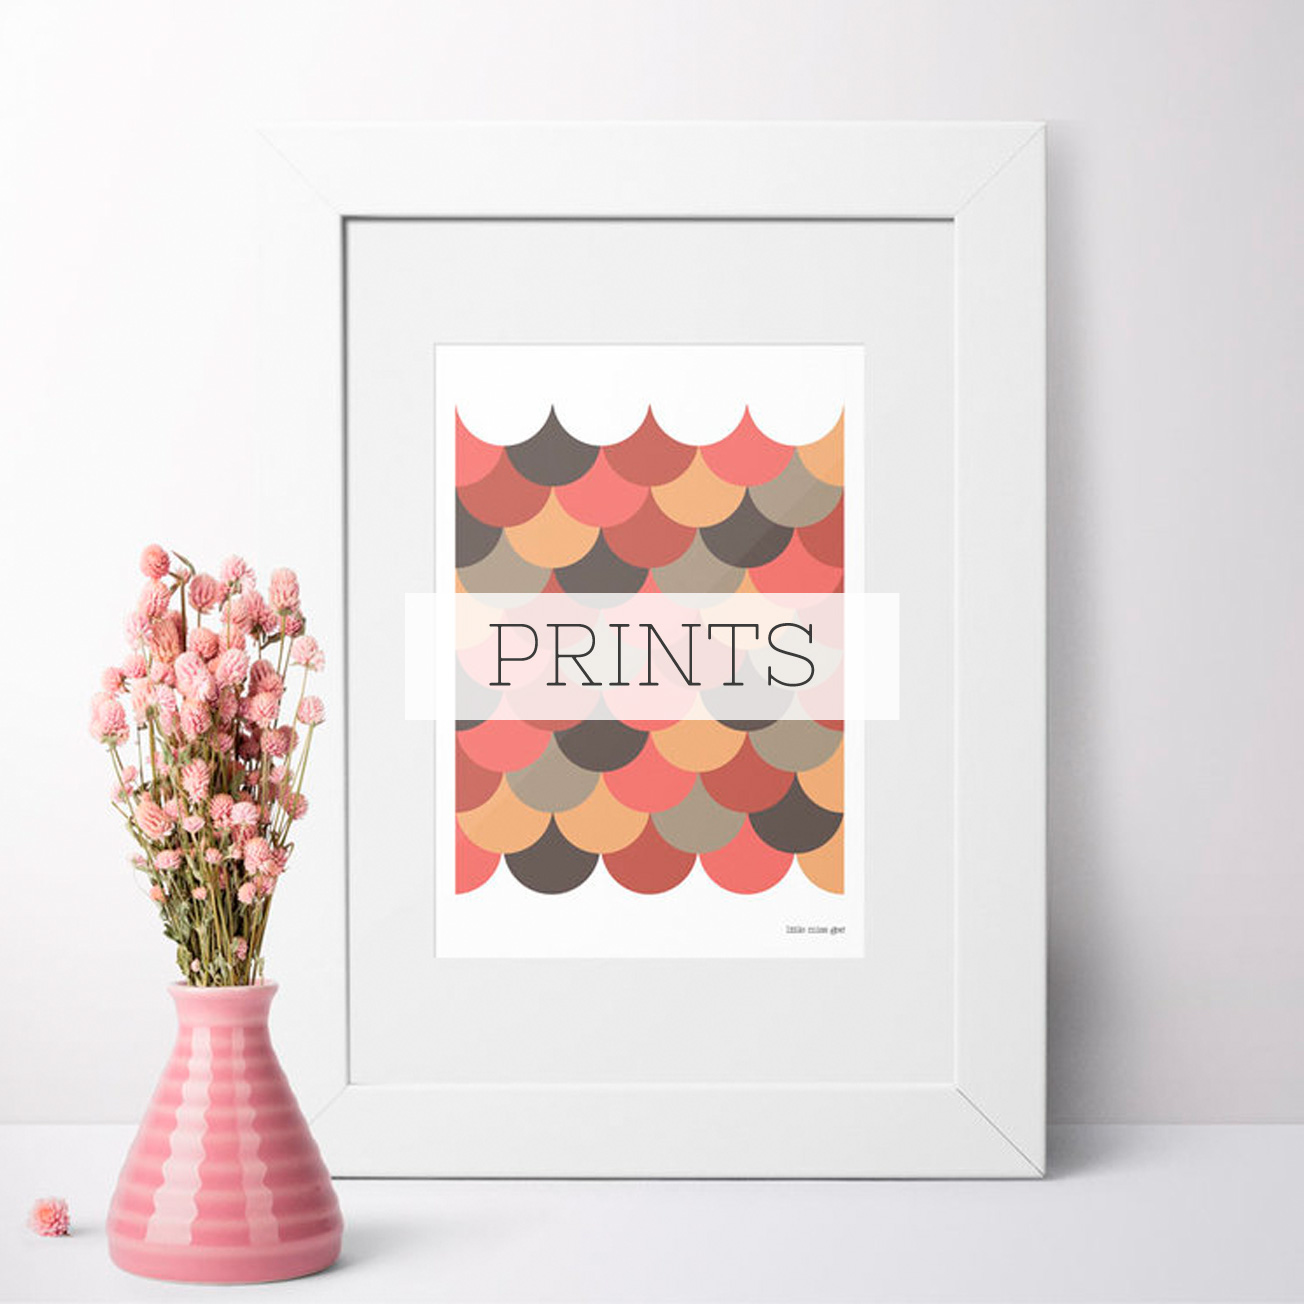 prints-shop-now.jpg